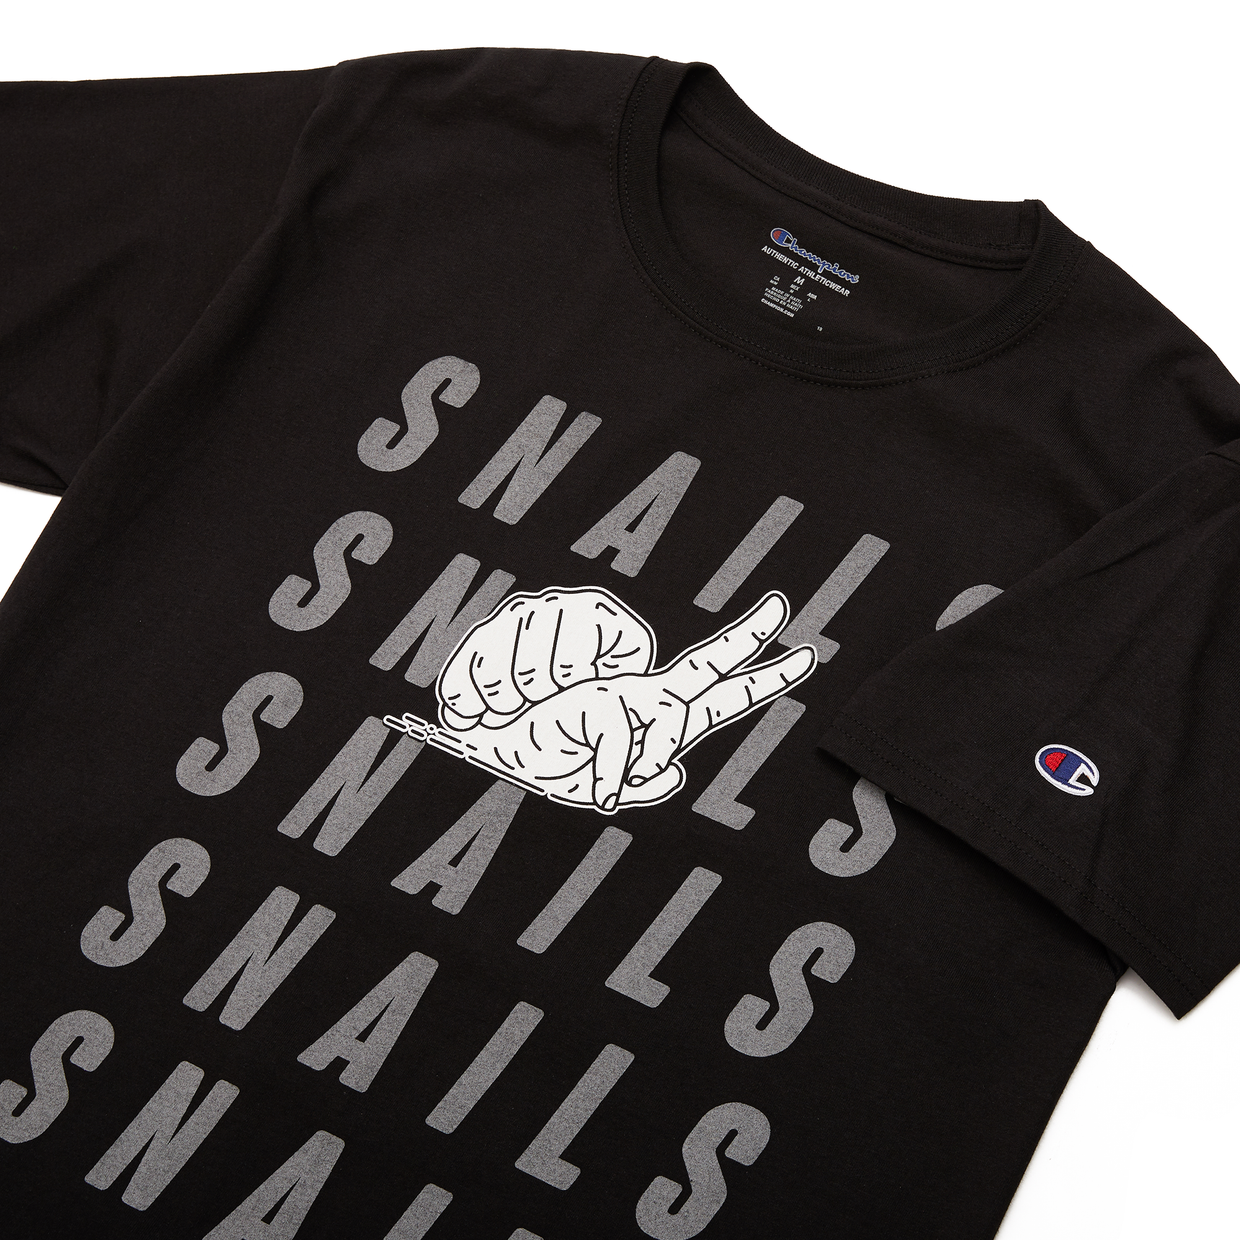 Snails x Champion Reflective Tee